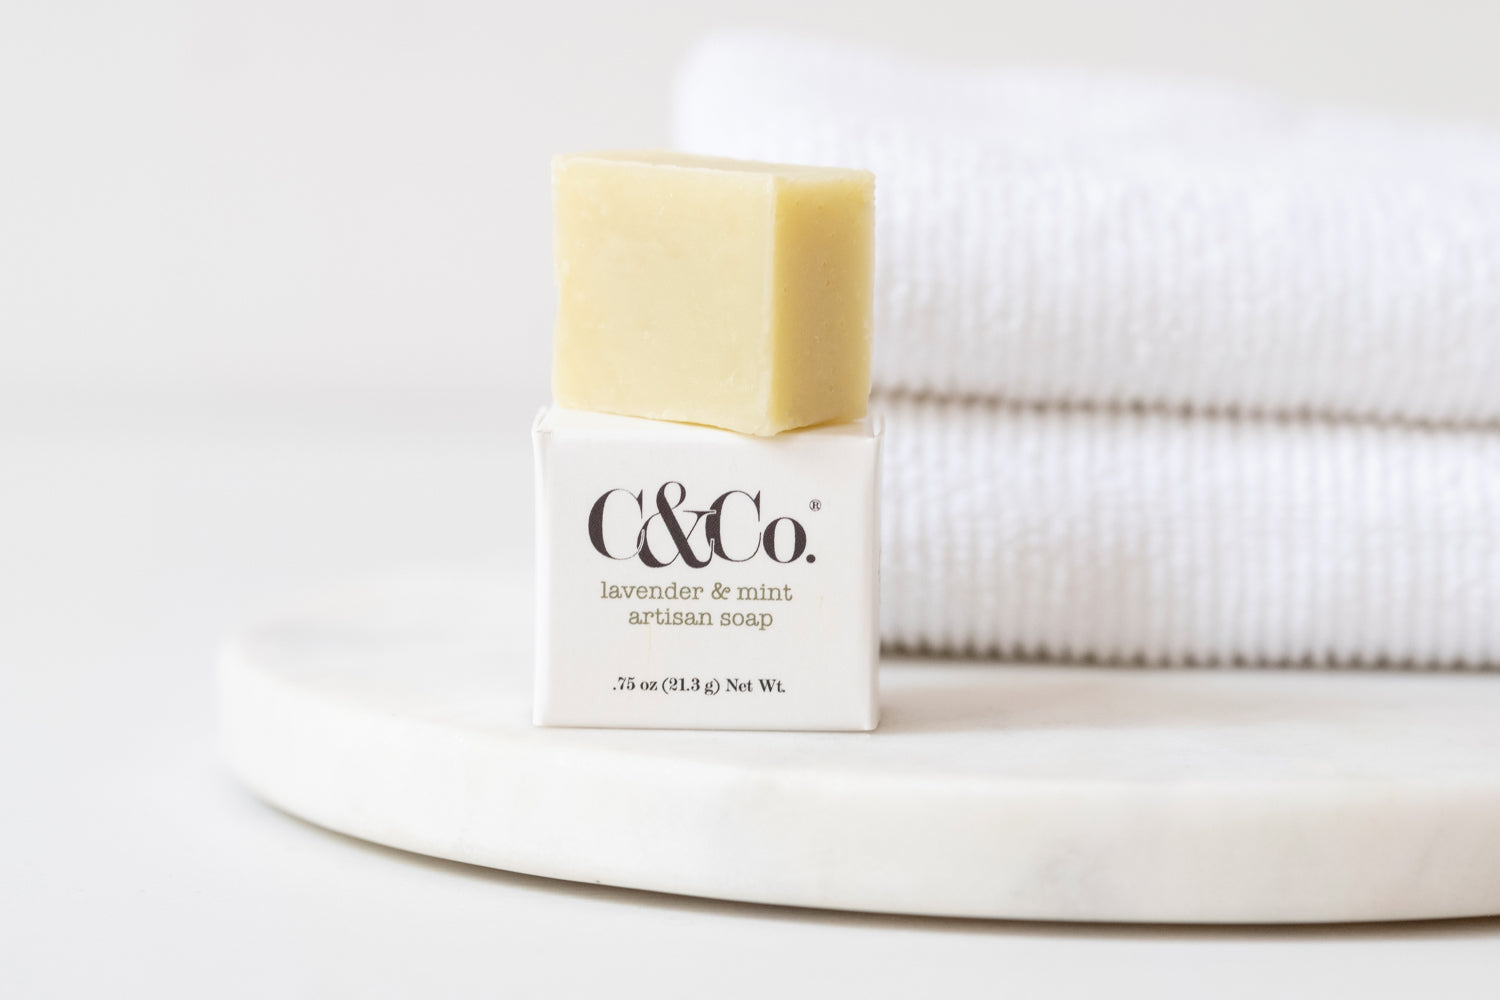 Mini Lavender Mint Artisan Soap - C & Co.®